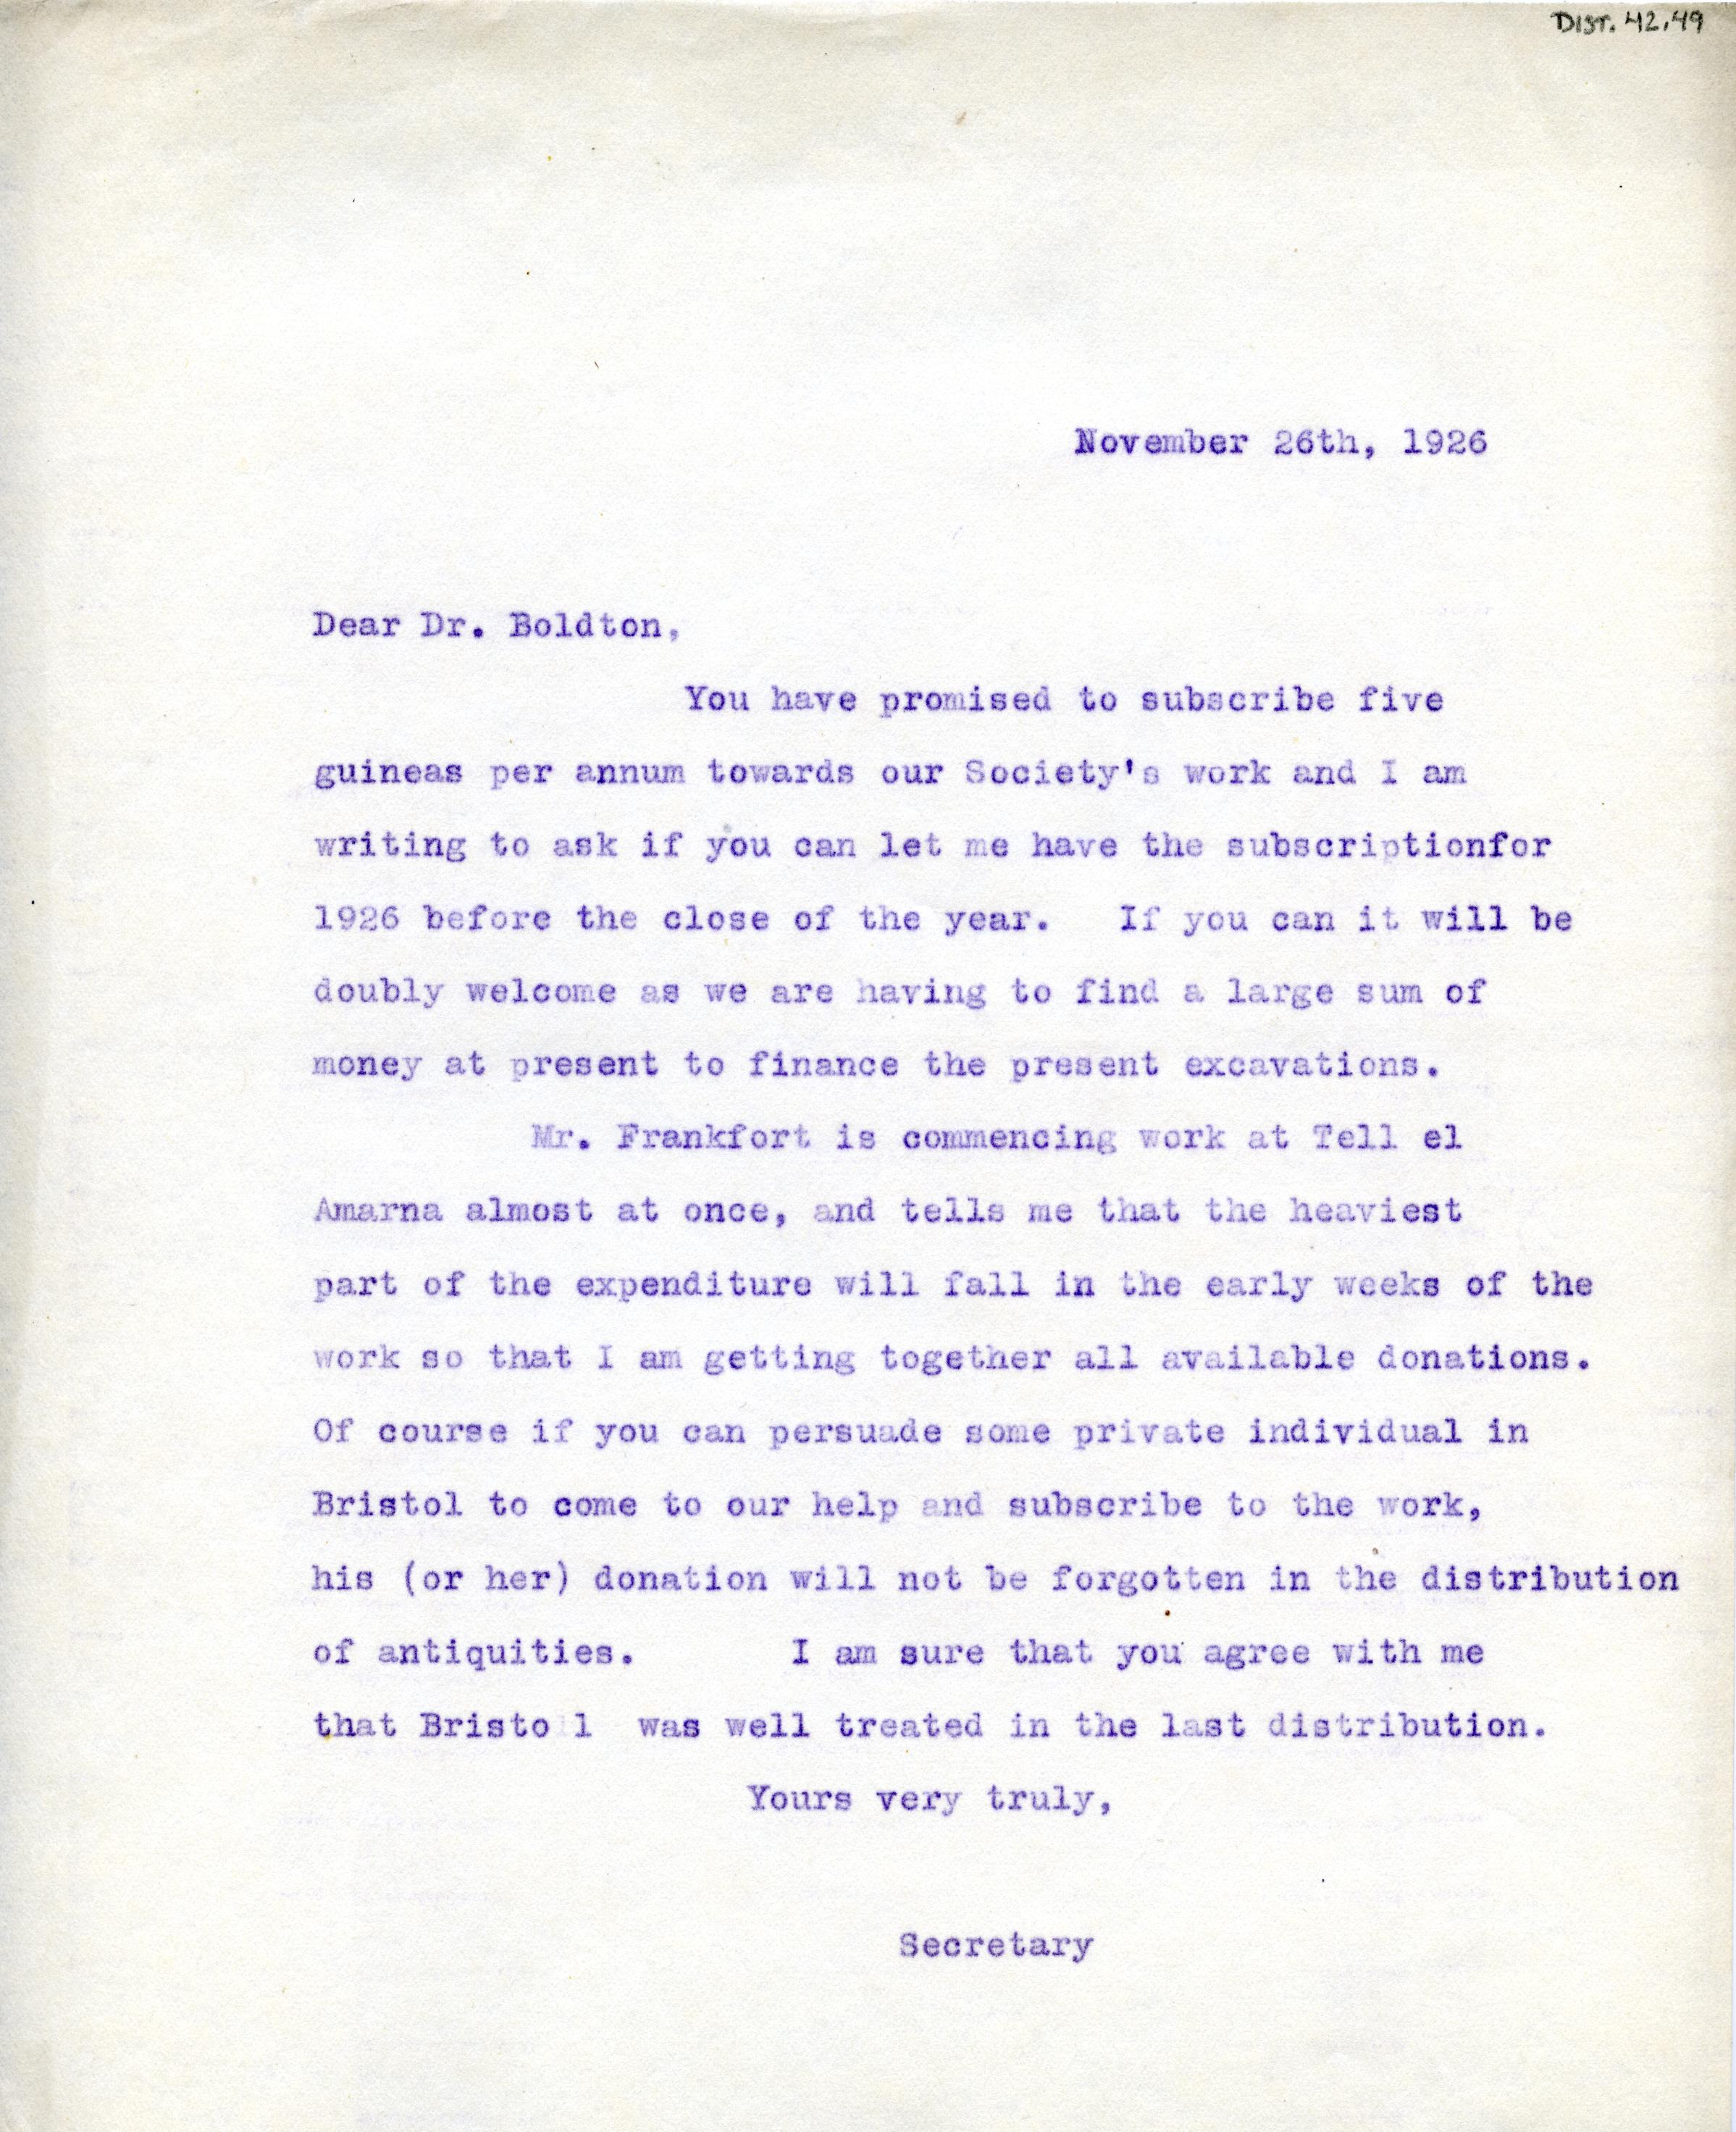 1922-71 Miscellaneous correspondence with museums DIST.42.49